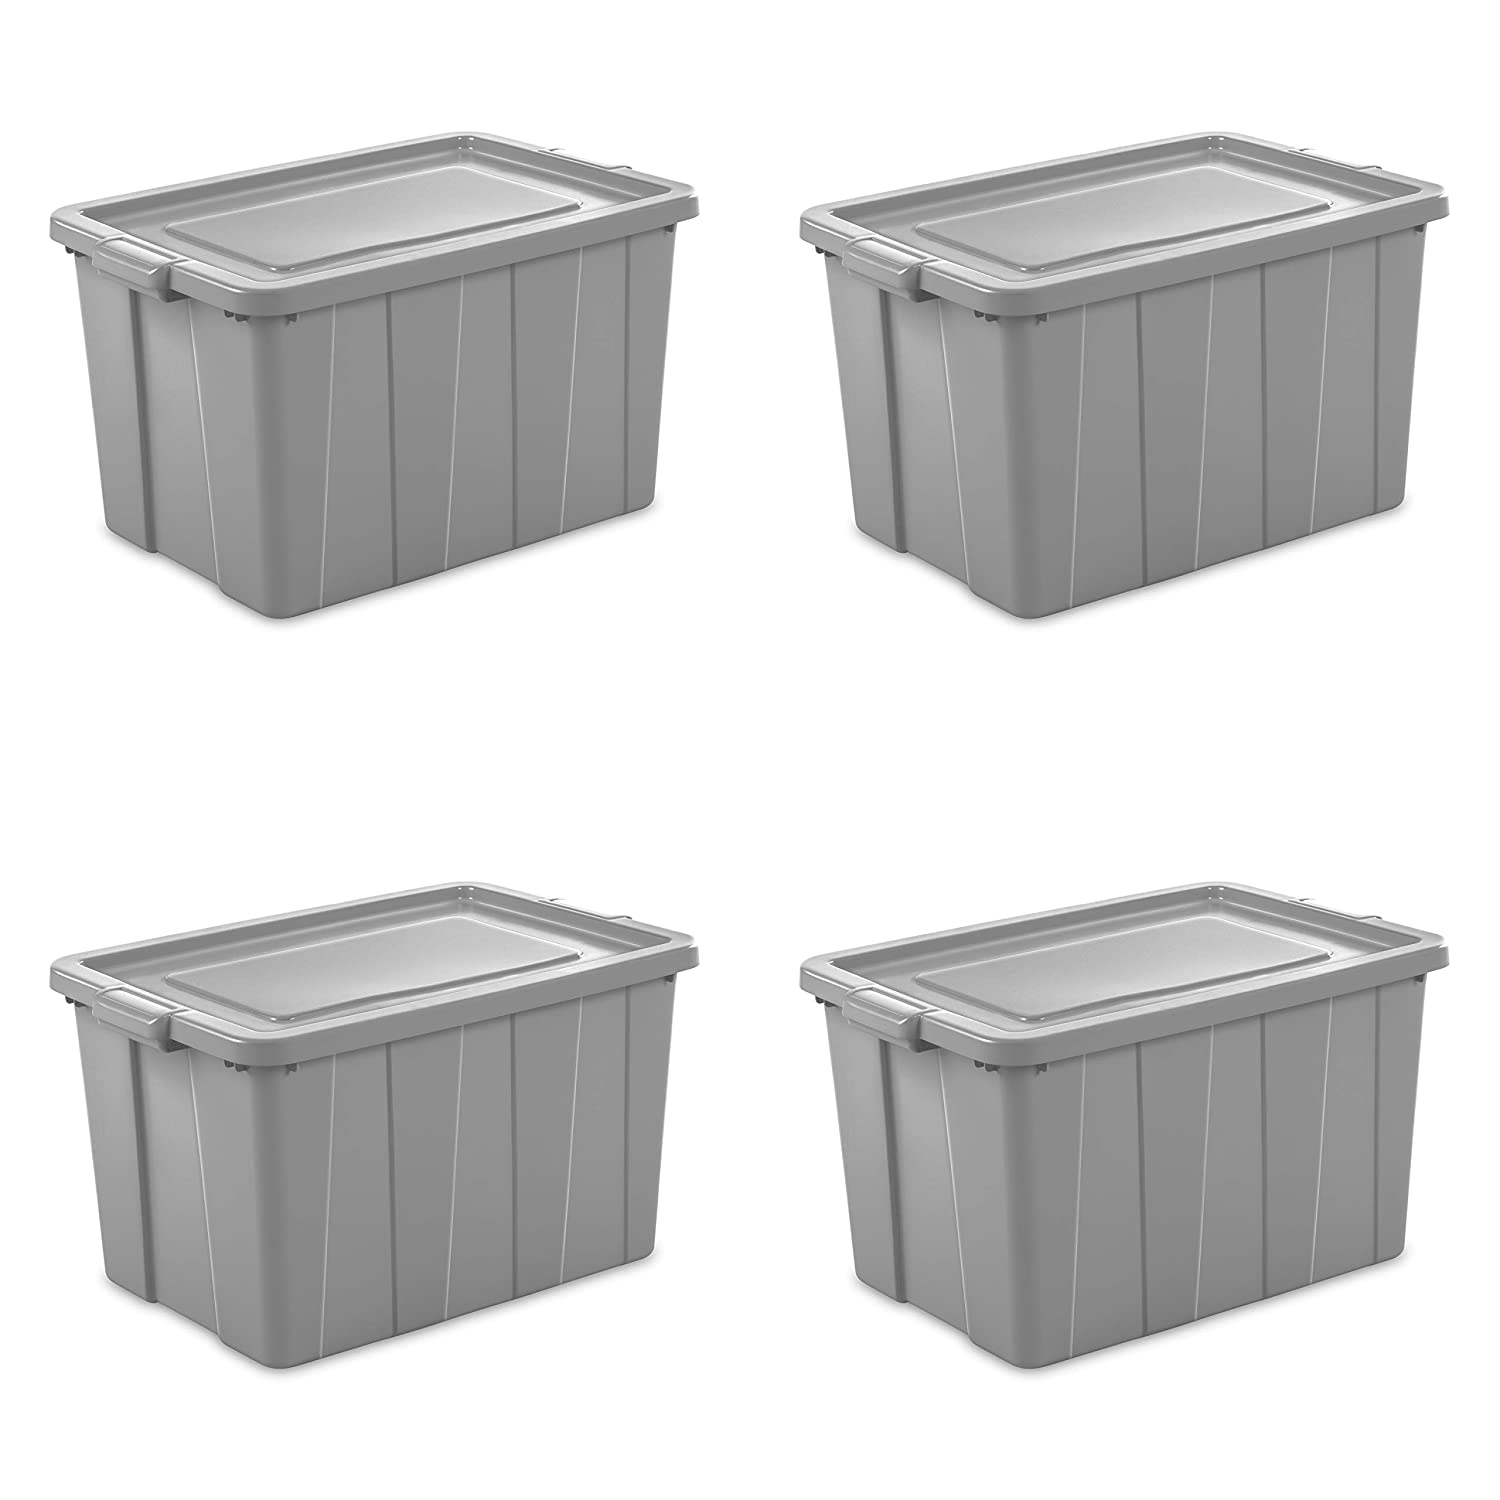 Sterilite 16796A04 Storage Tote, 30 gallon, Cement Lid and Base